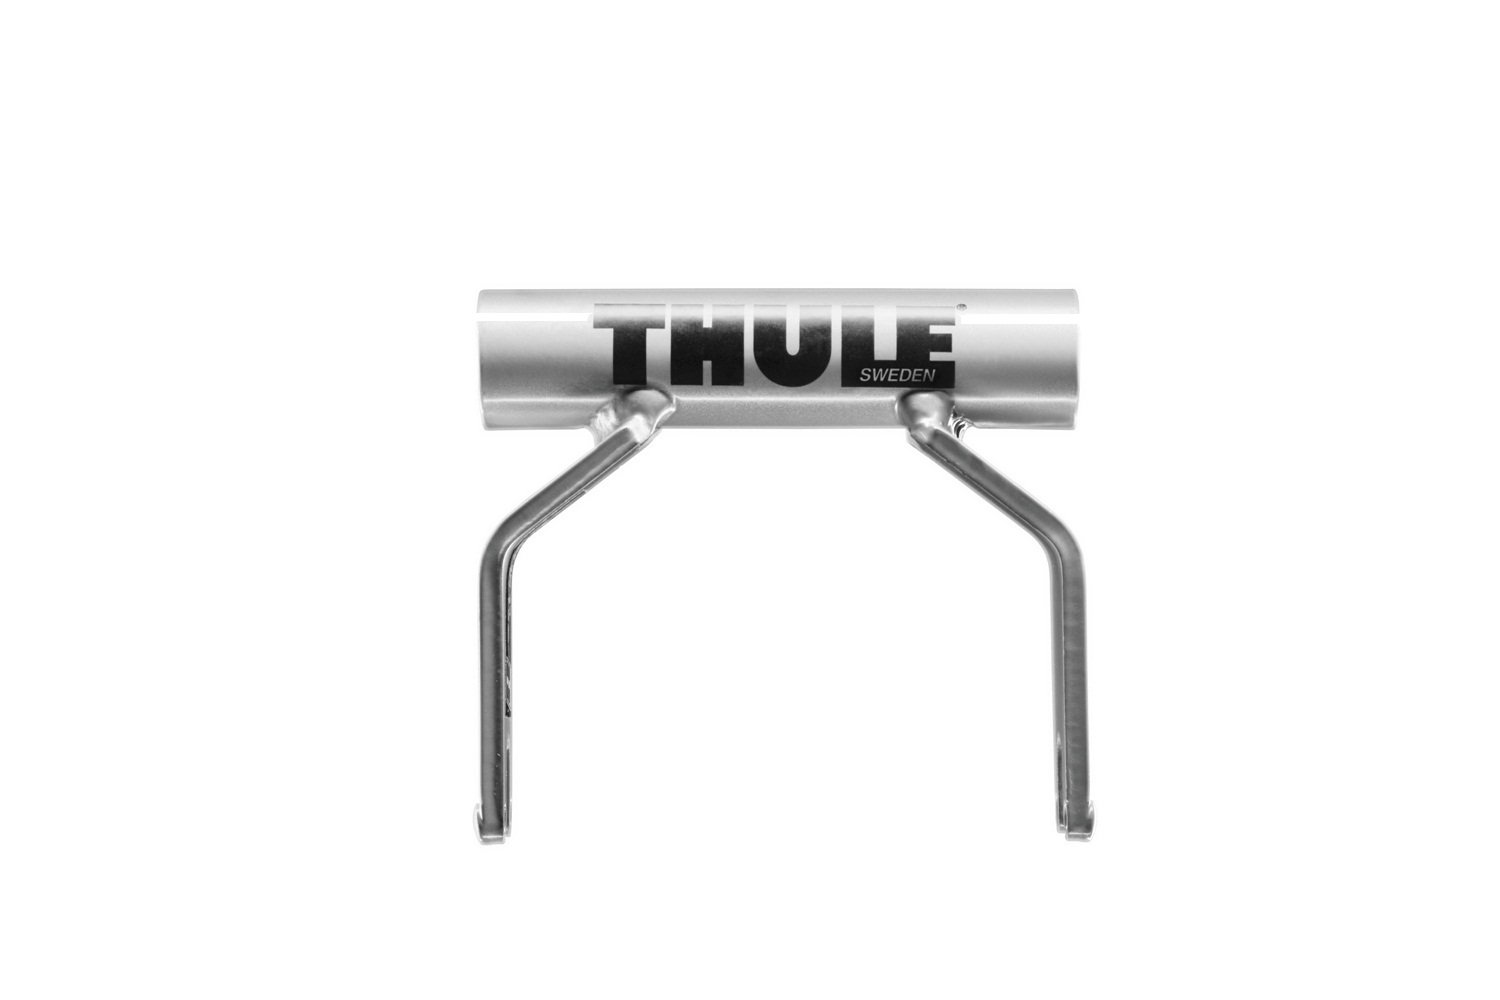 Thule Thru Axle Adapter